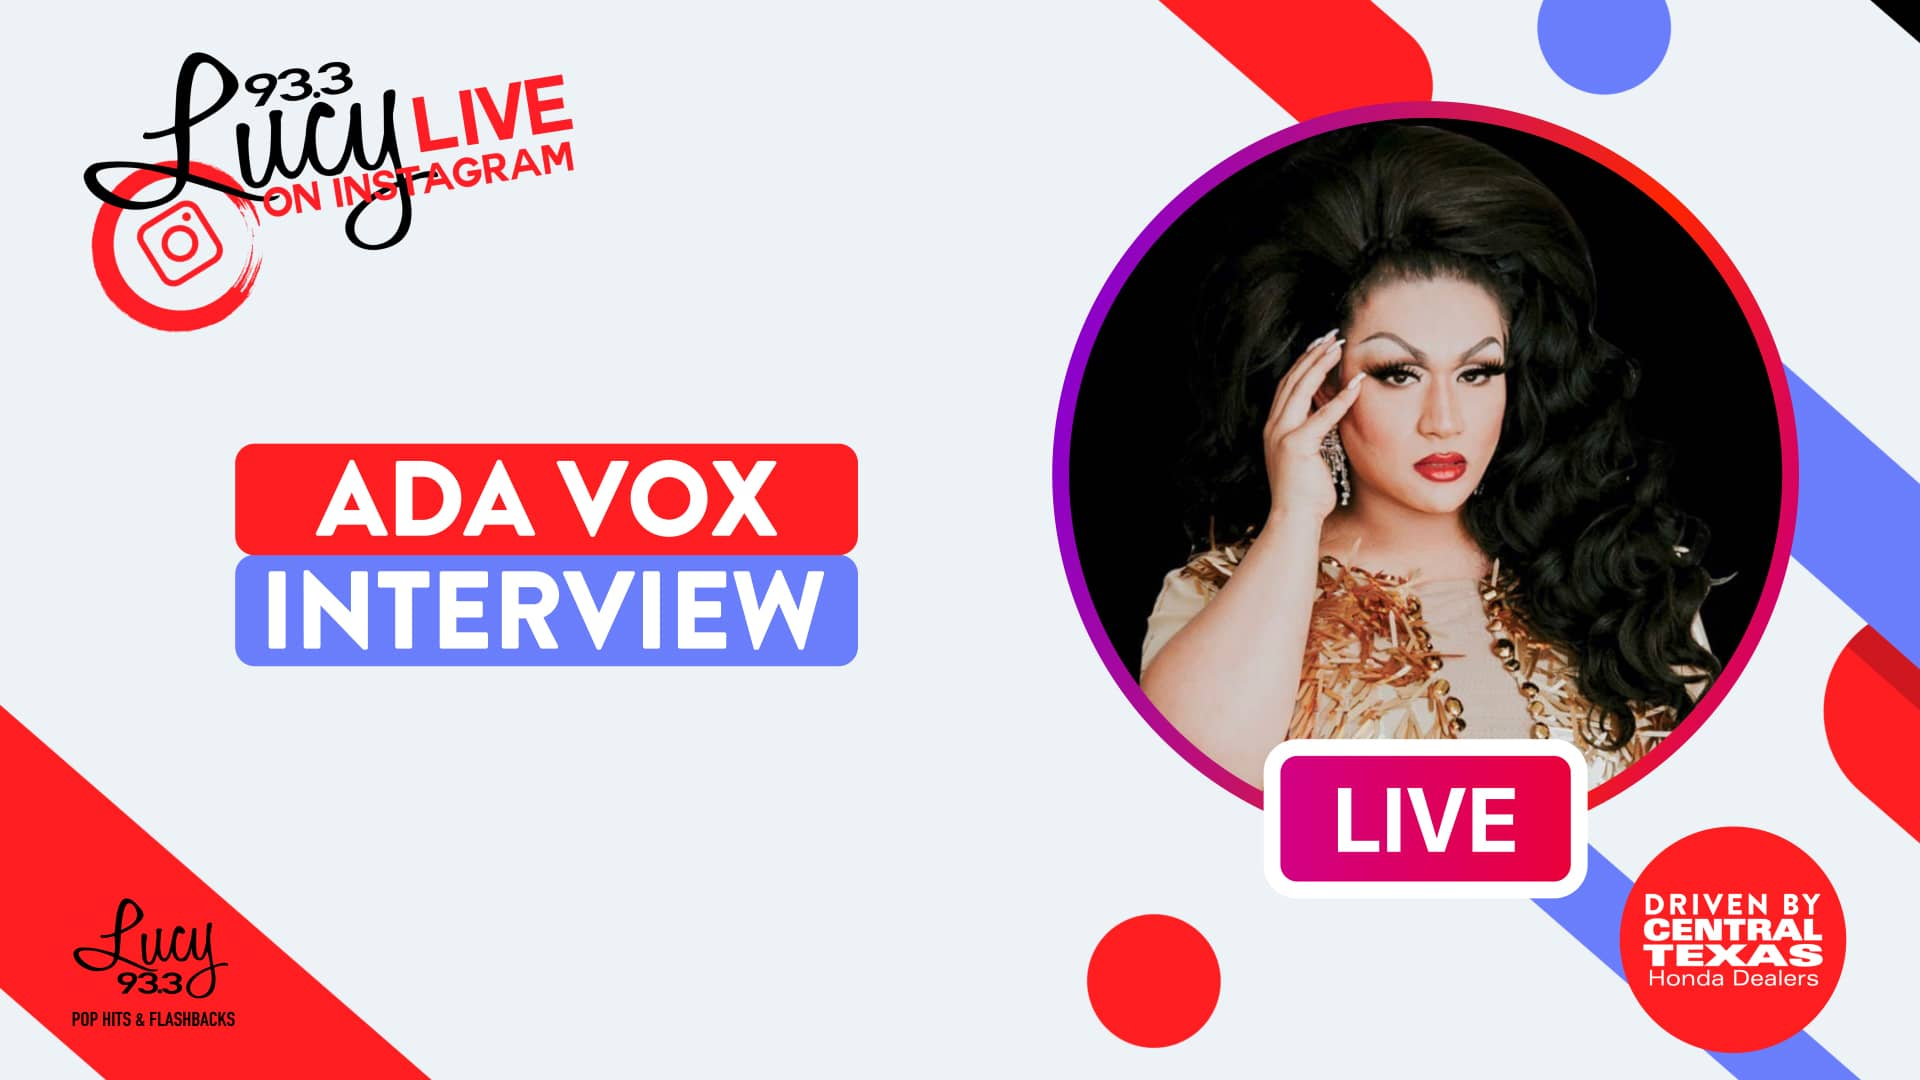 Lucy Live with Ada Vox